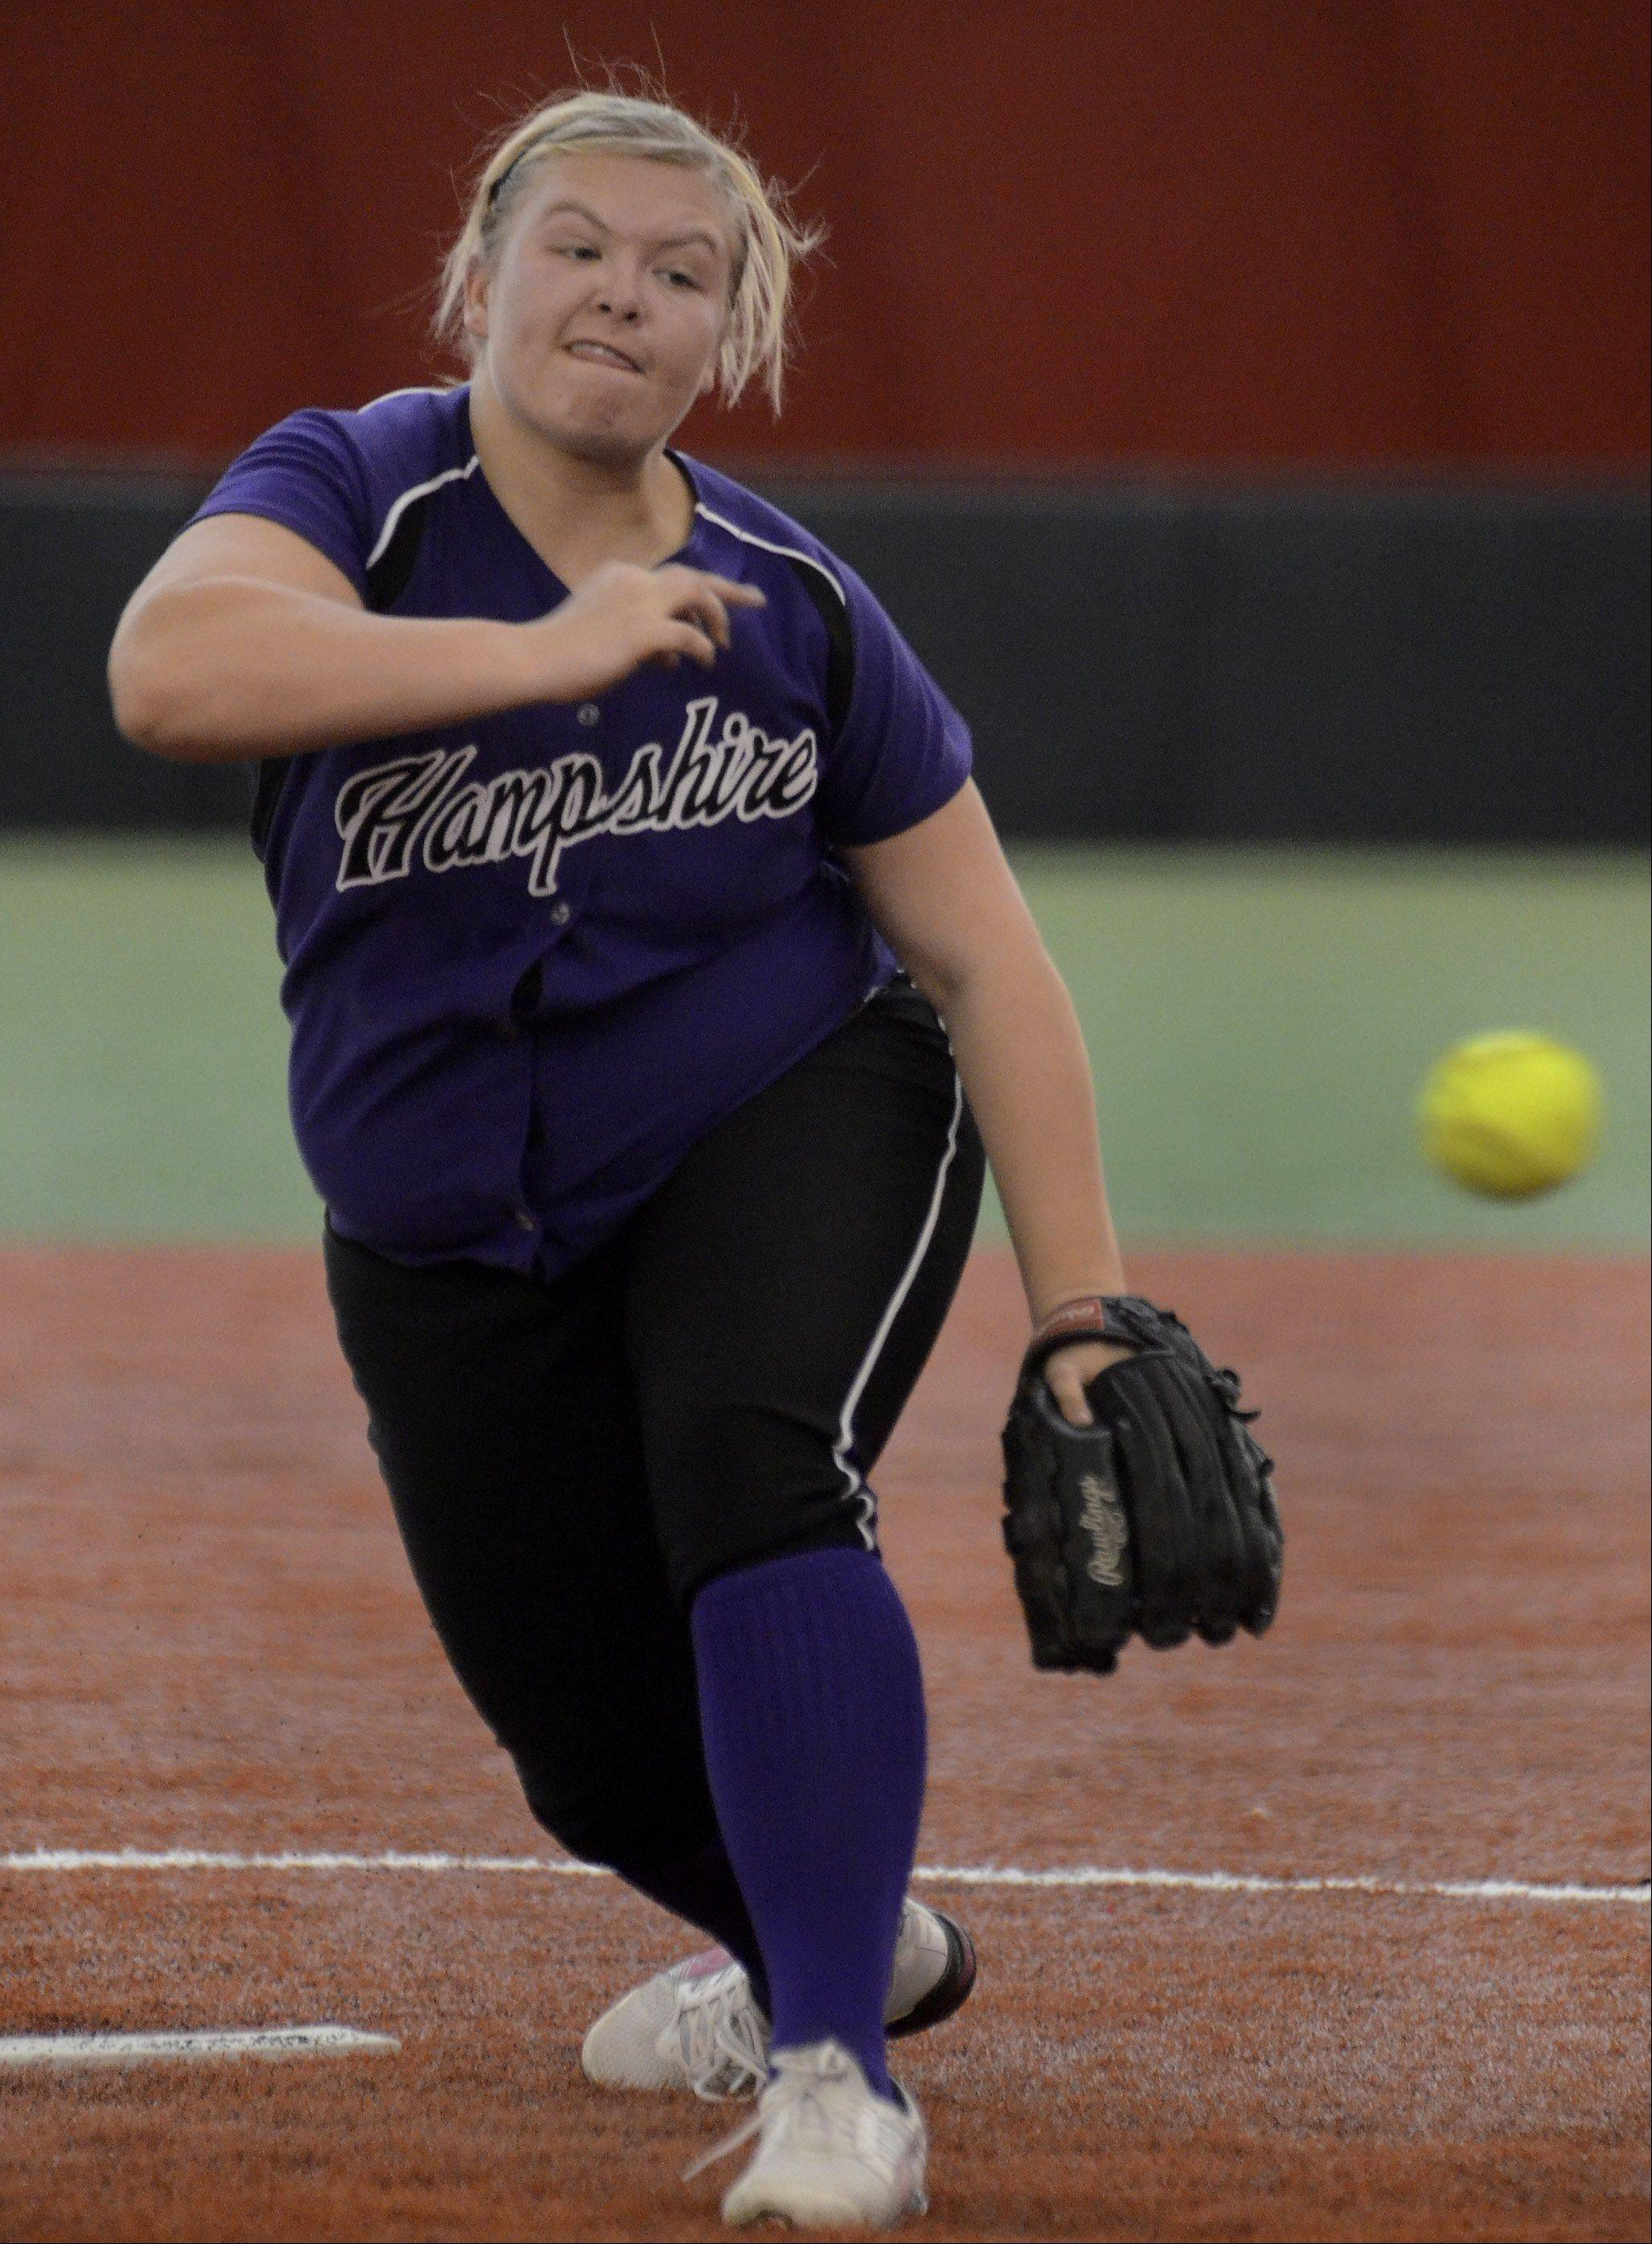 Hampshire pitcher Jen Hurst fires away Monday during Elgin's 3-2 win in eight innings at The Dome at The Ballpark in Rosemont.